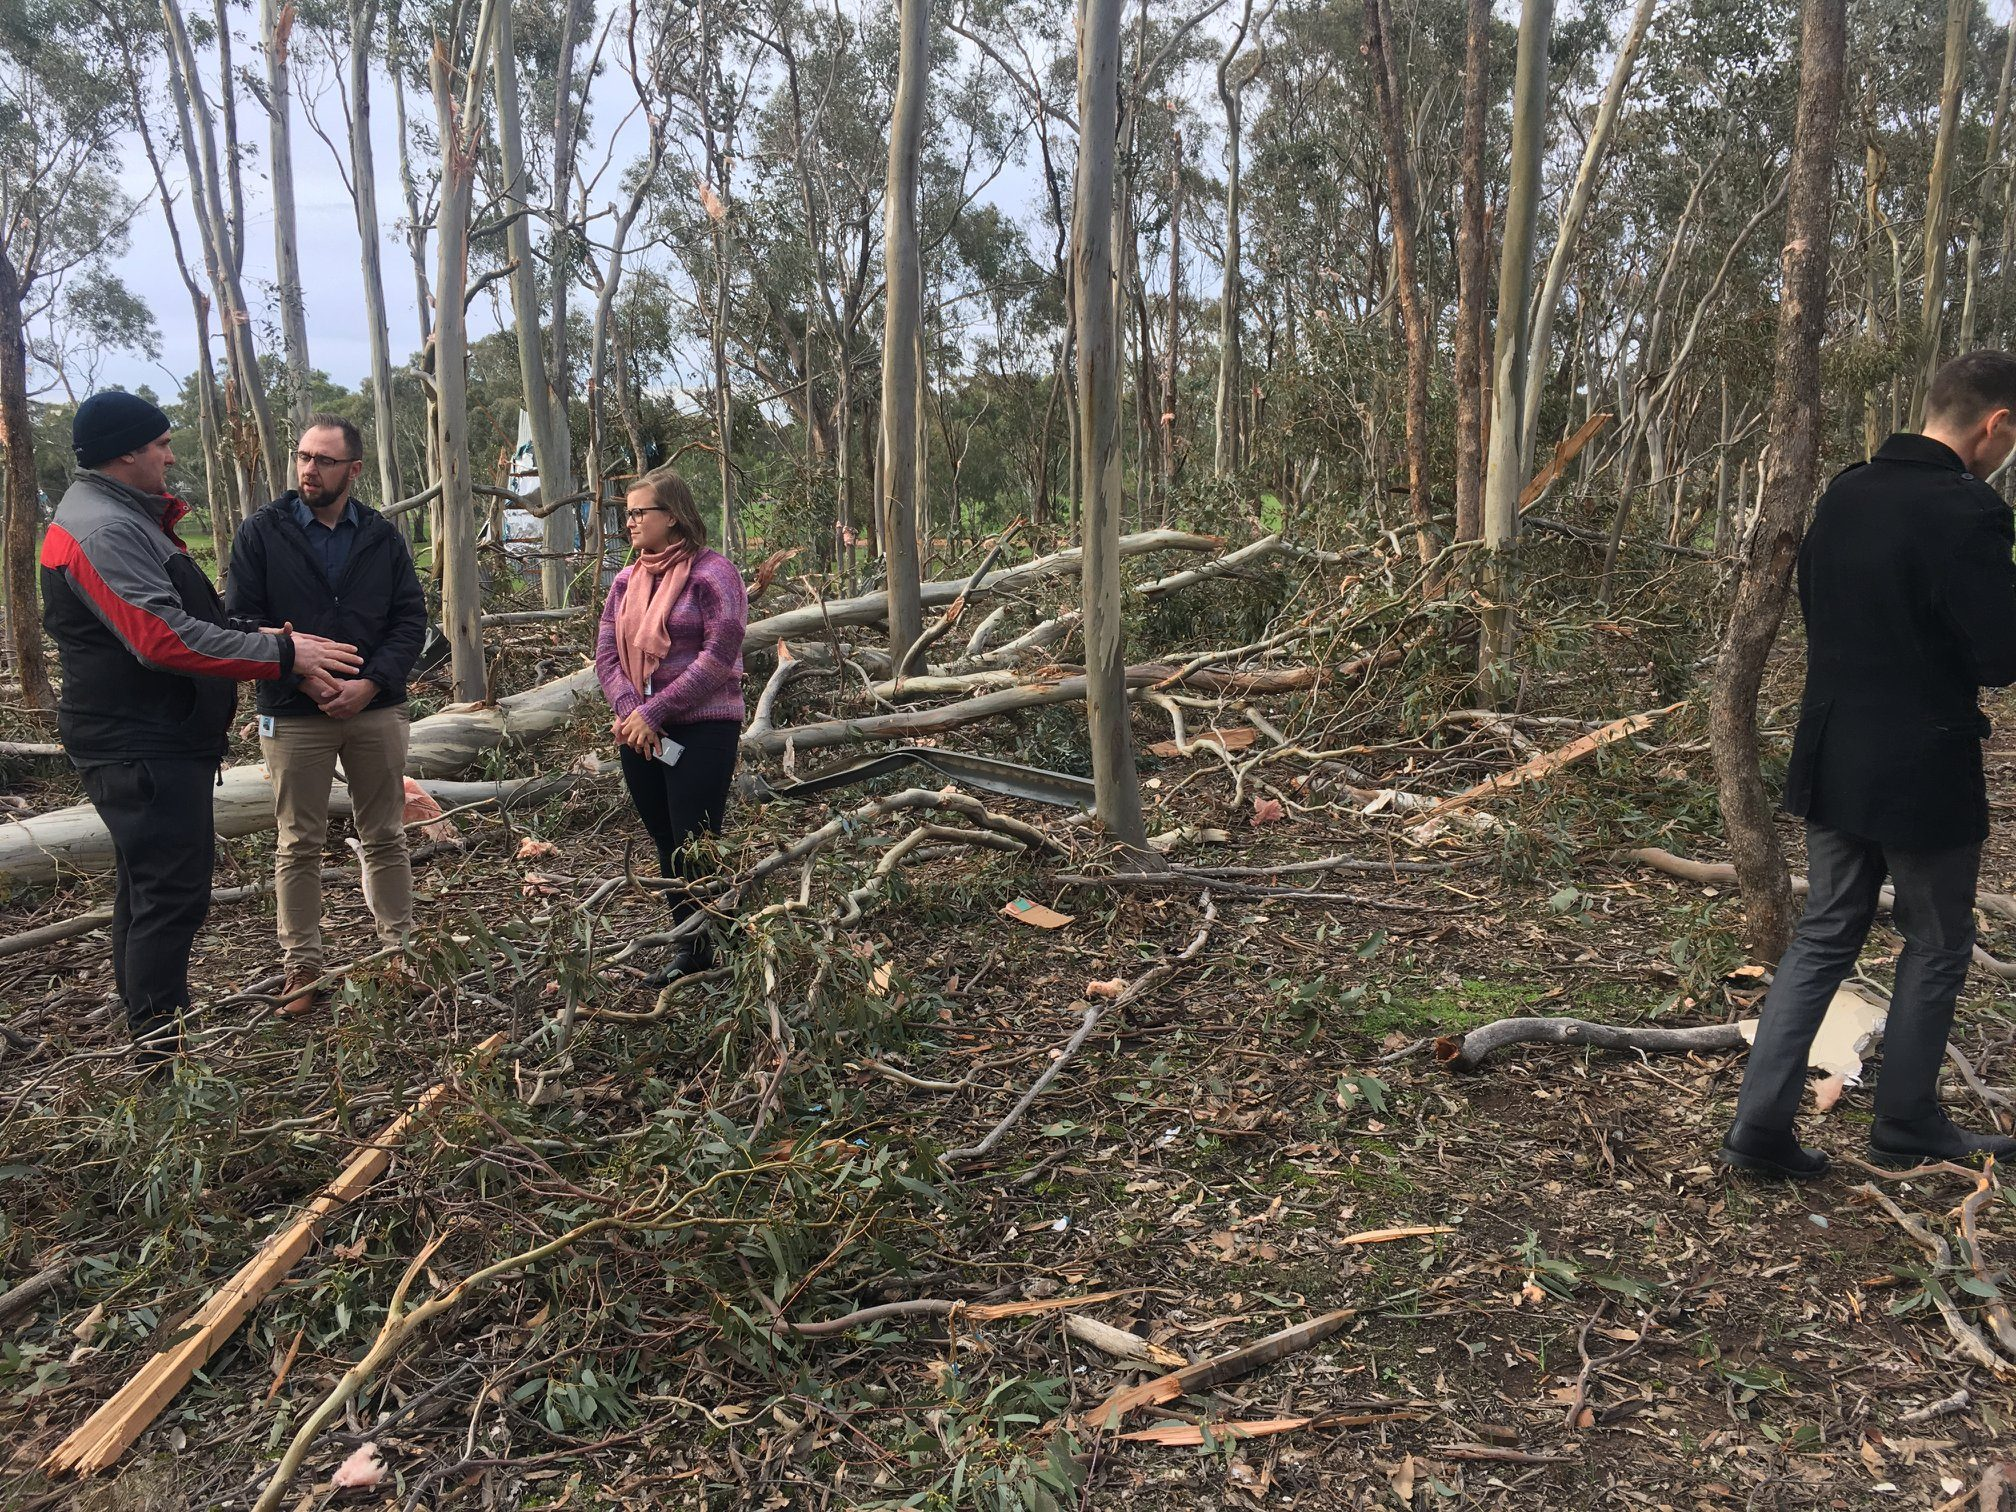 photo: Bureau of Meteorology;link: https://gallery.windy.com/albums/a/tornadoes-in-australia-bom-2019.jpg;desc: Bureau meteorologists meet with owner, Wayne, whose house in Axe Creek, Vic, was destroyed by a tornado on 29 June 2019;